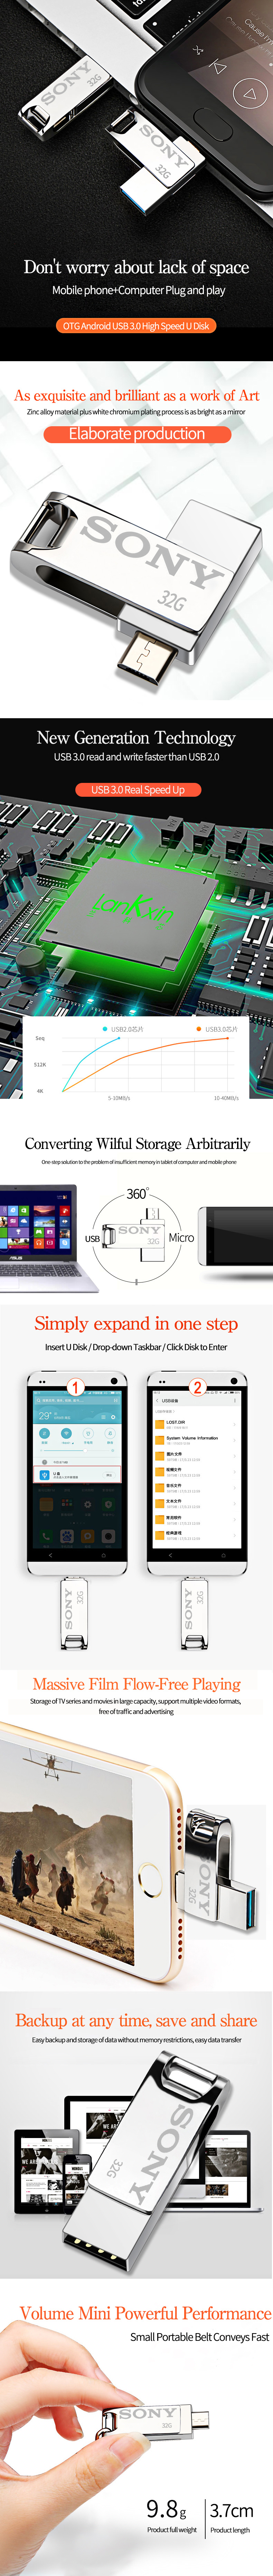 SONY 32GB OTG USB Flash Drive Smartphone External Usb Stick Pen Drive  Memory Stick U Disk for Android PC with free M2 LED Watch and case